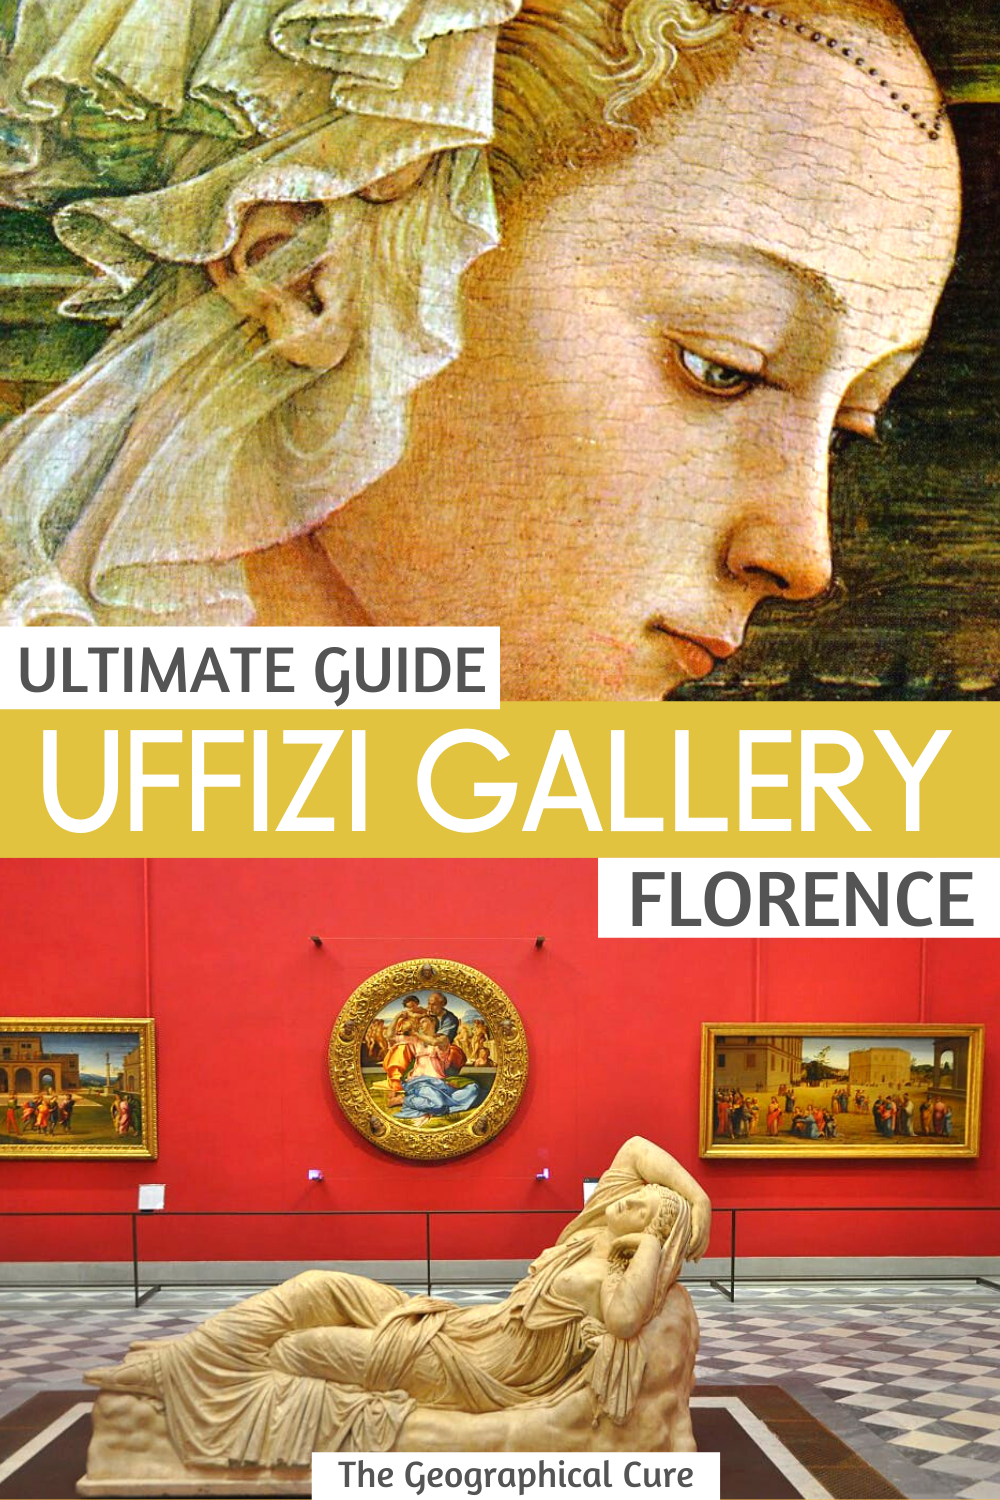 Ultimate Guide to Florence's Uffizi Gallery: Tips, History & Must See Masterpieces